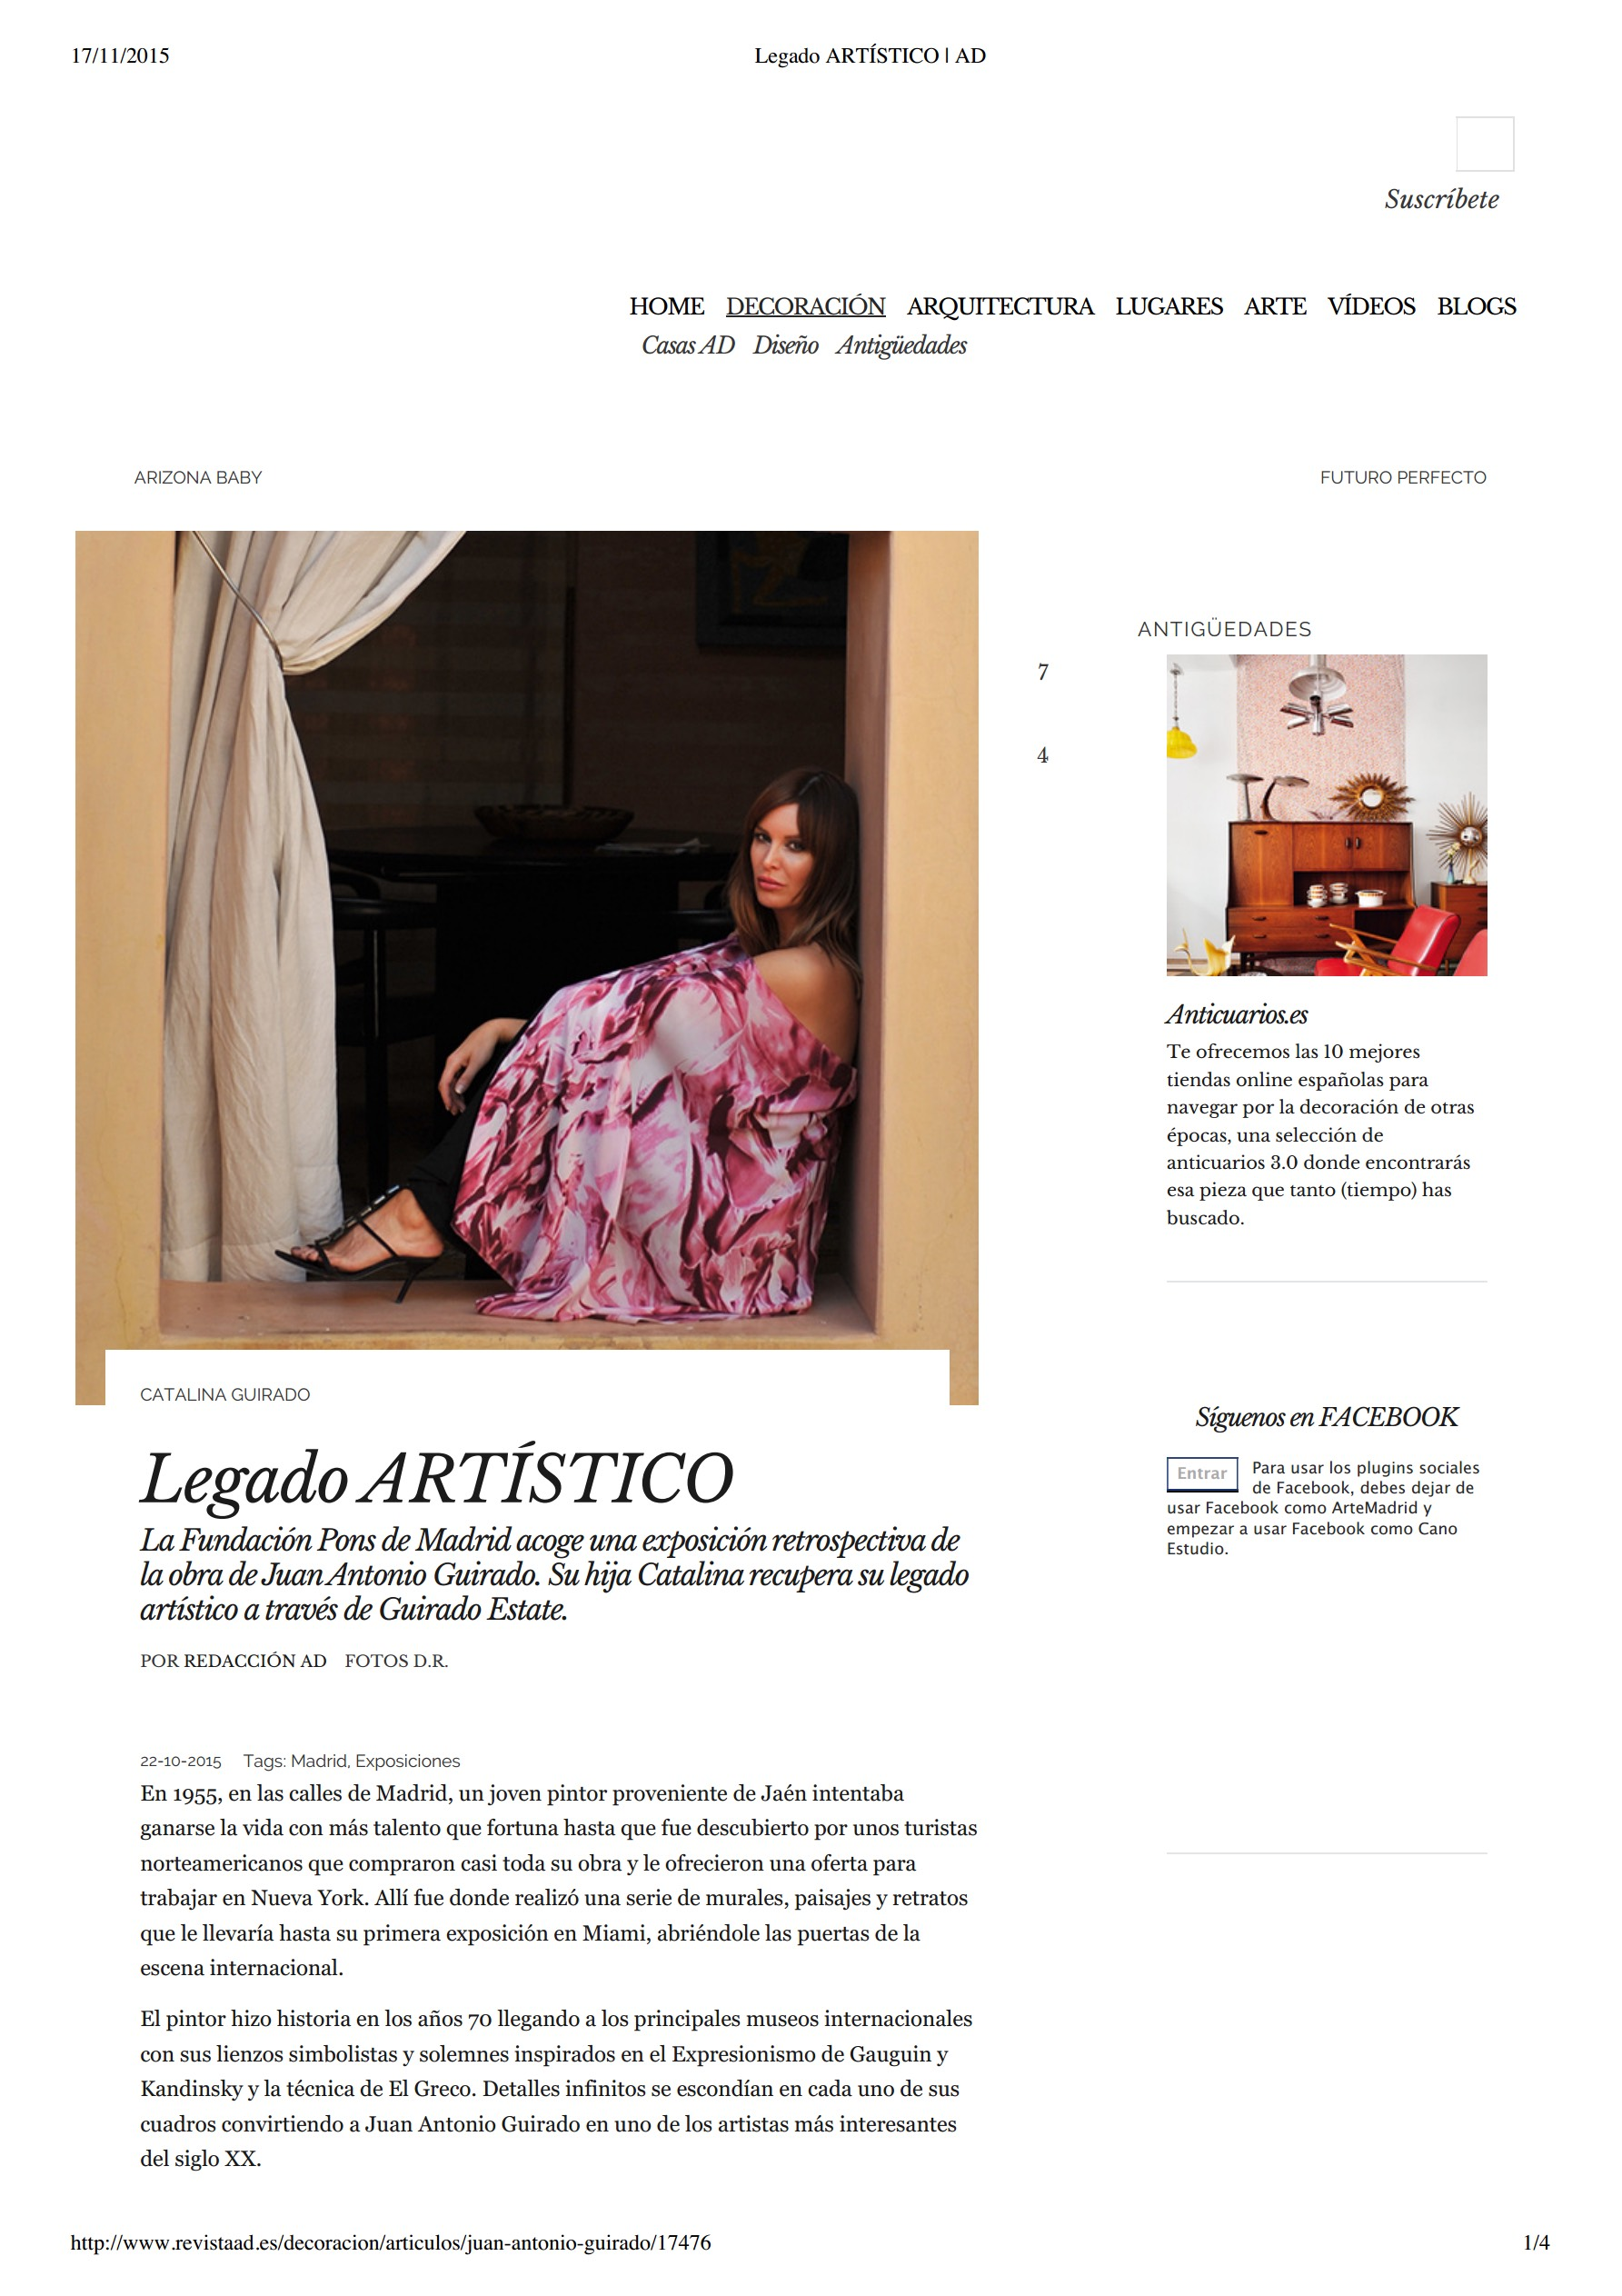 Legado Artistico, Architectural Digest, by Redaccion AD, 22 October, 2015_300%_0